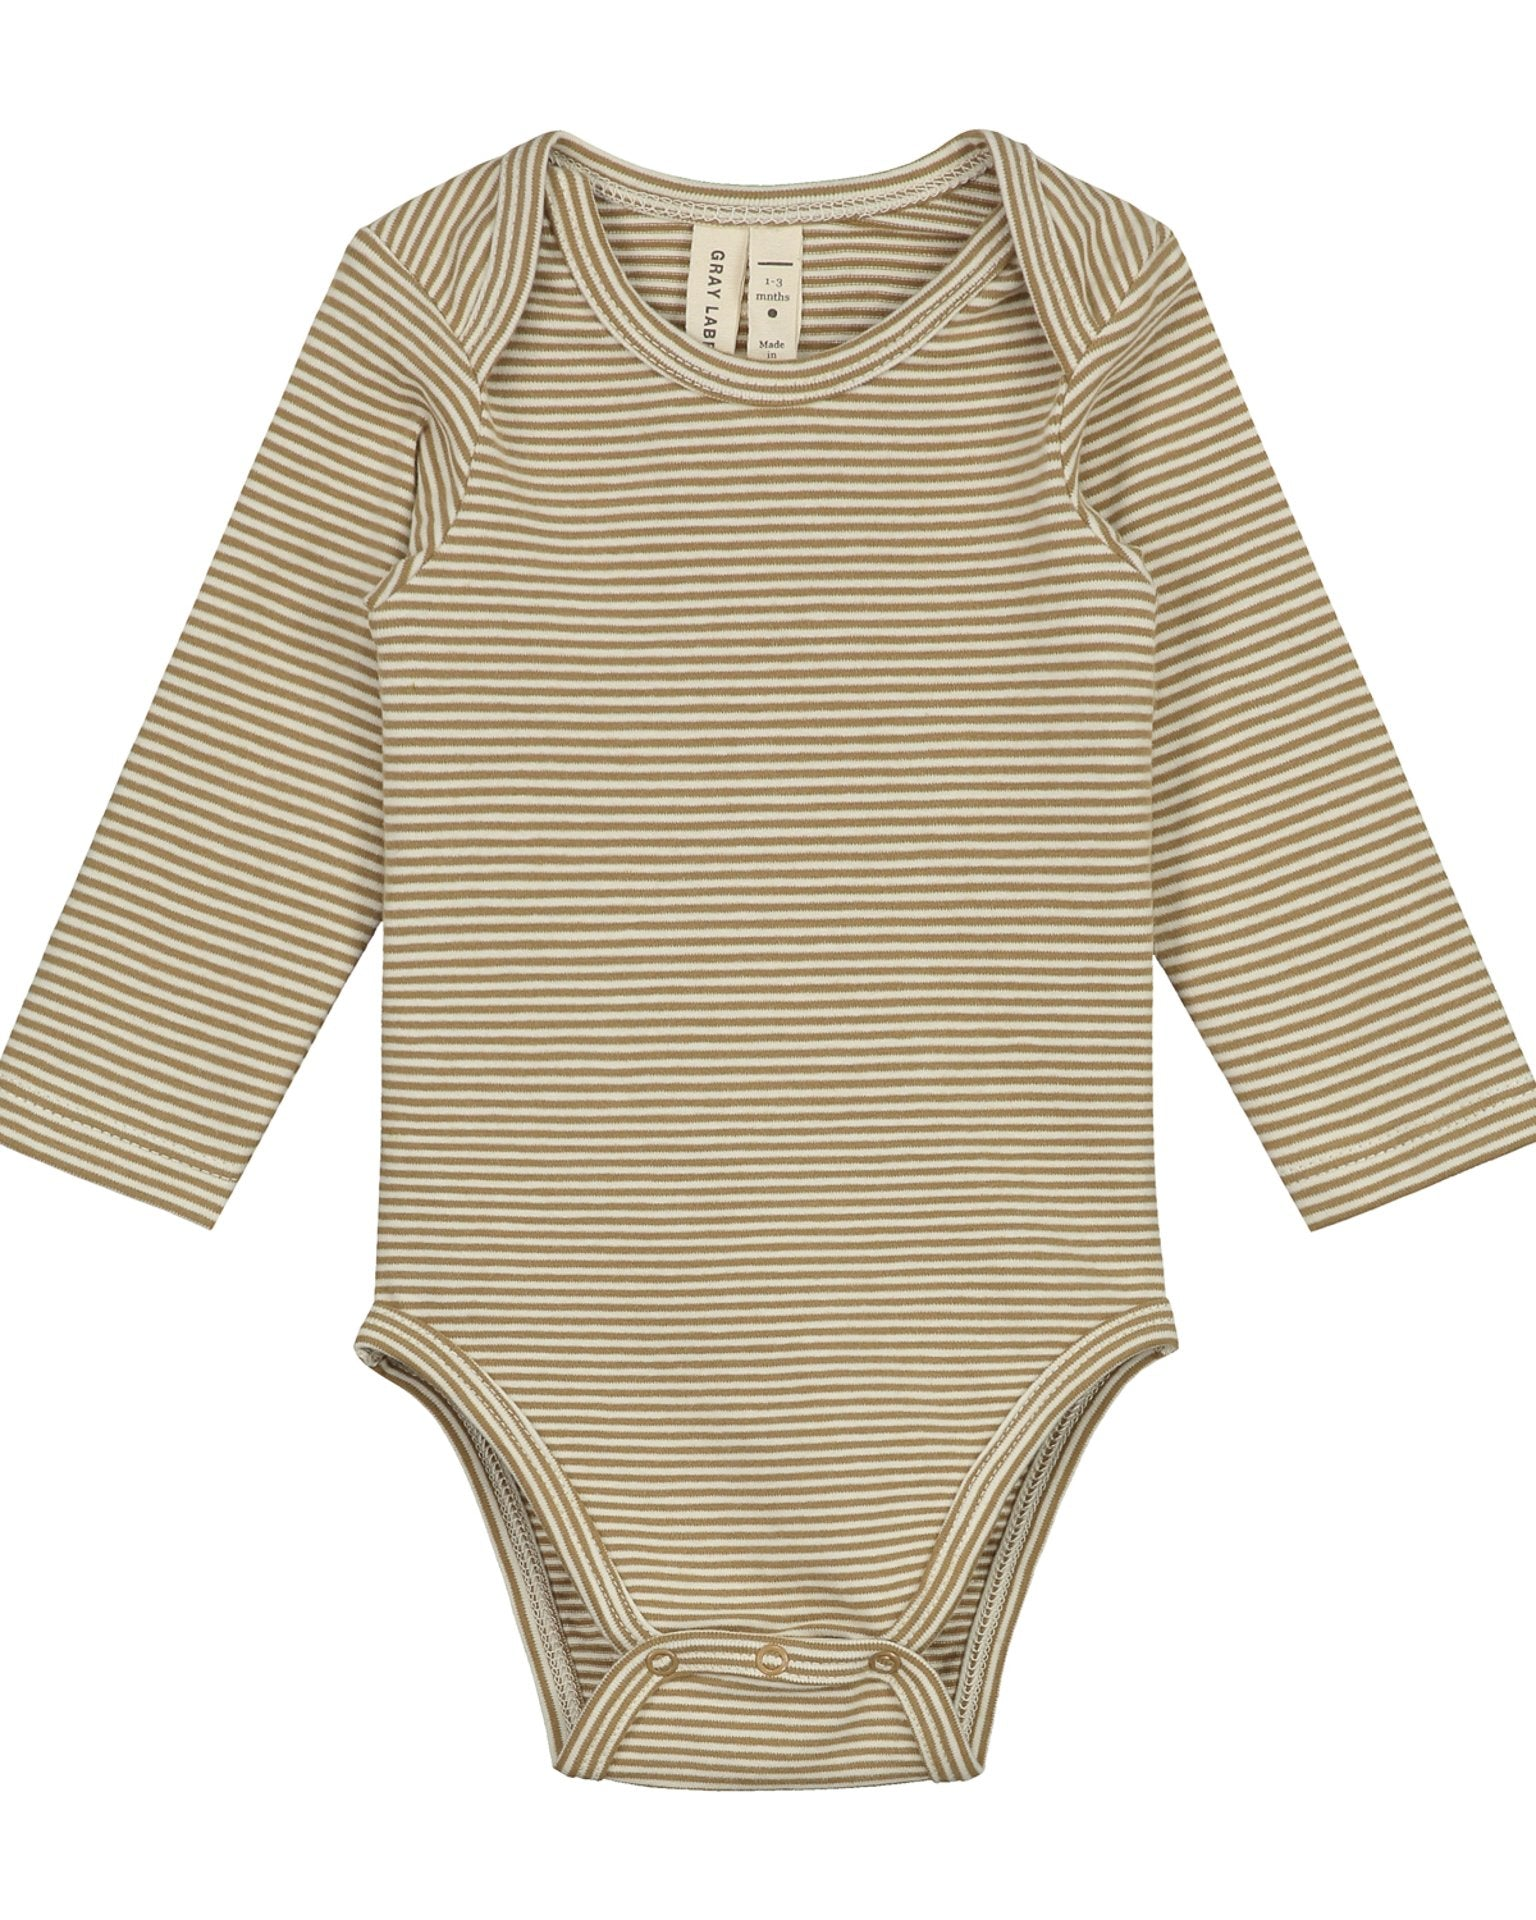 Little gray label baby girl baby long sleeve onesie in peanut + cream